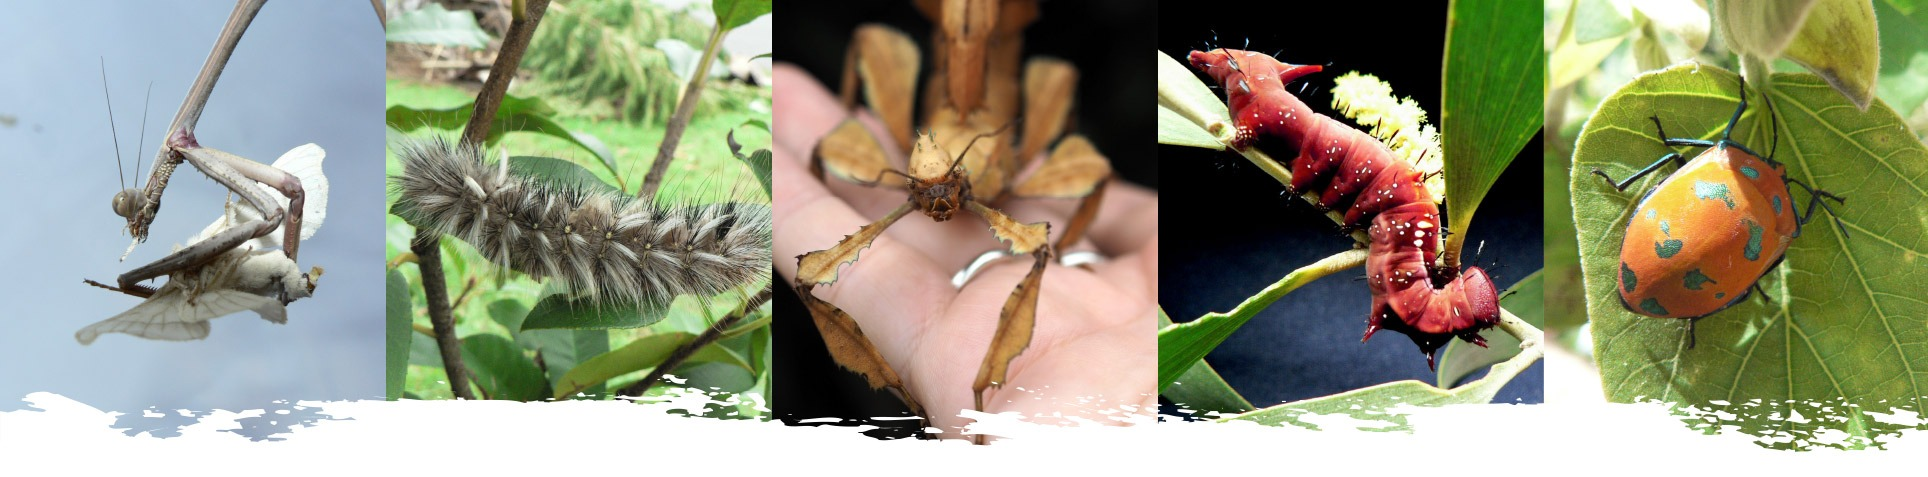 insect-photo-strip4